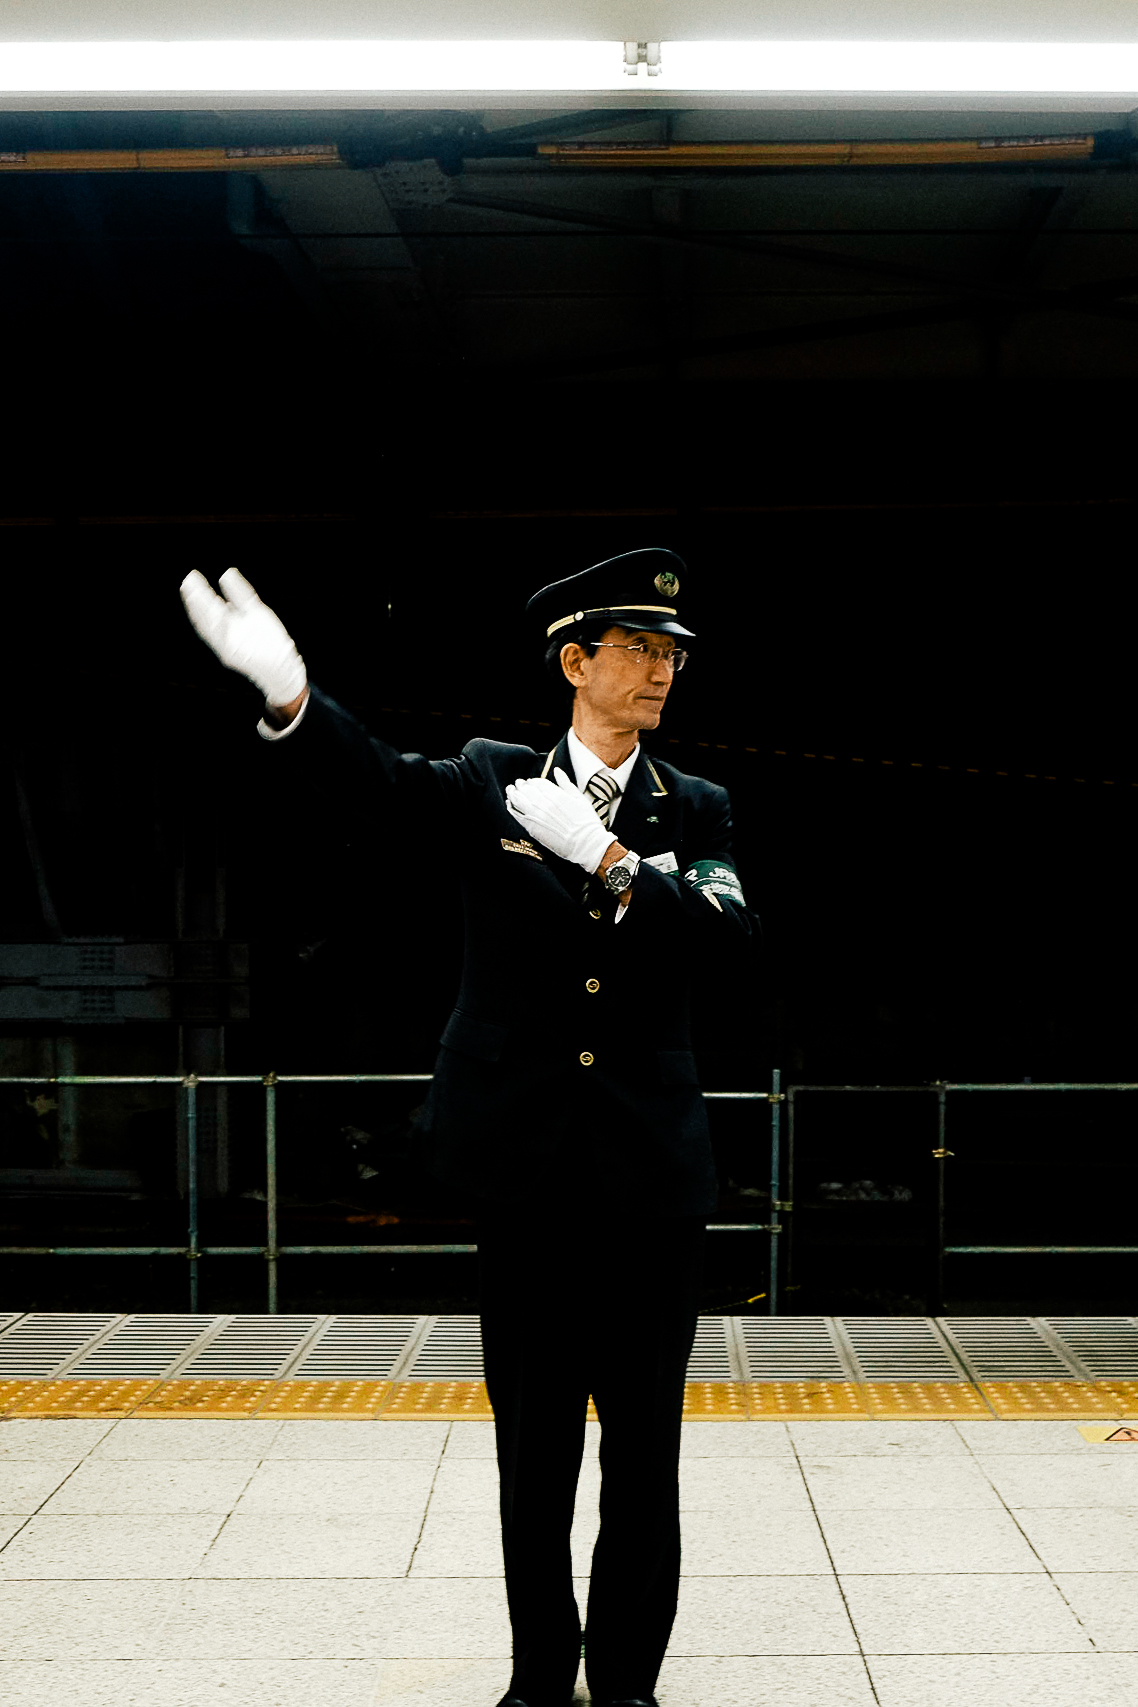 Railway officer directing the crowds.